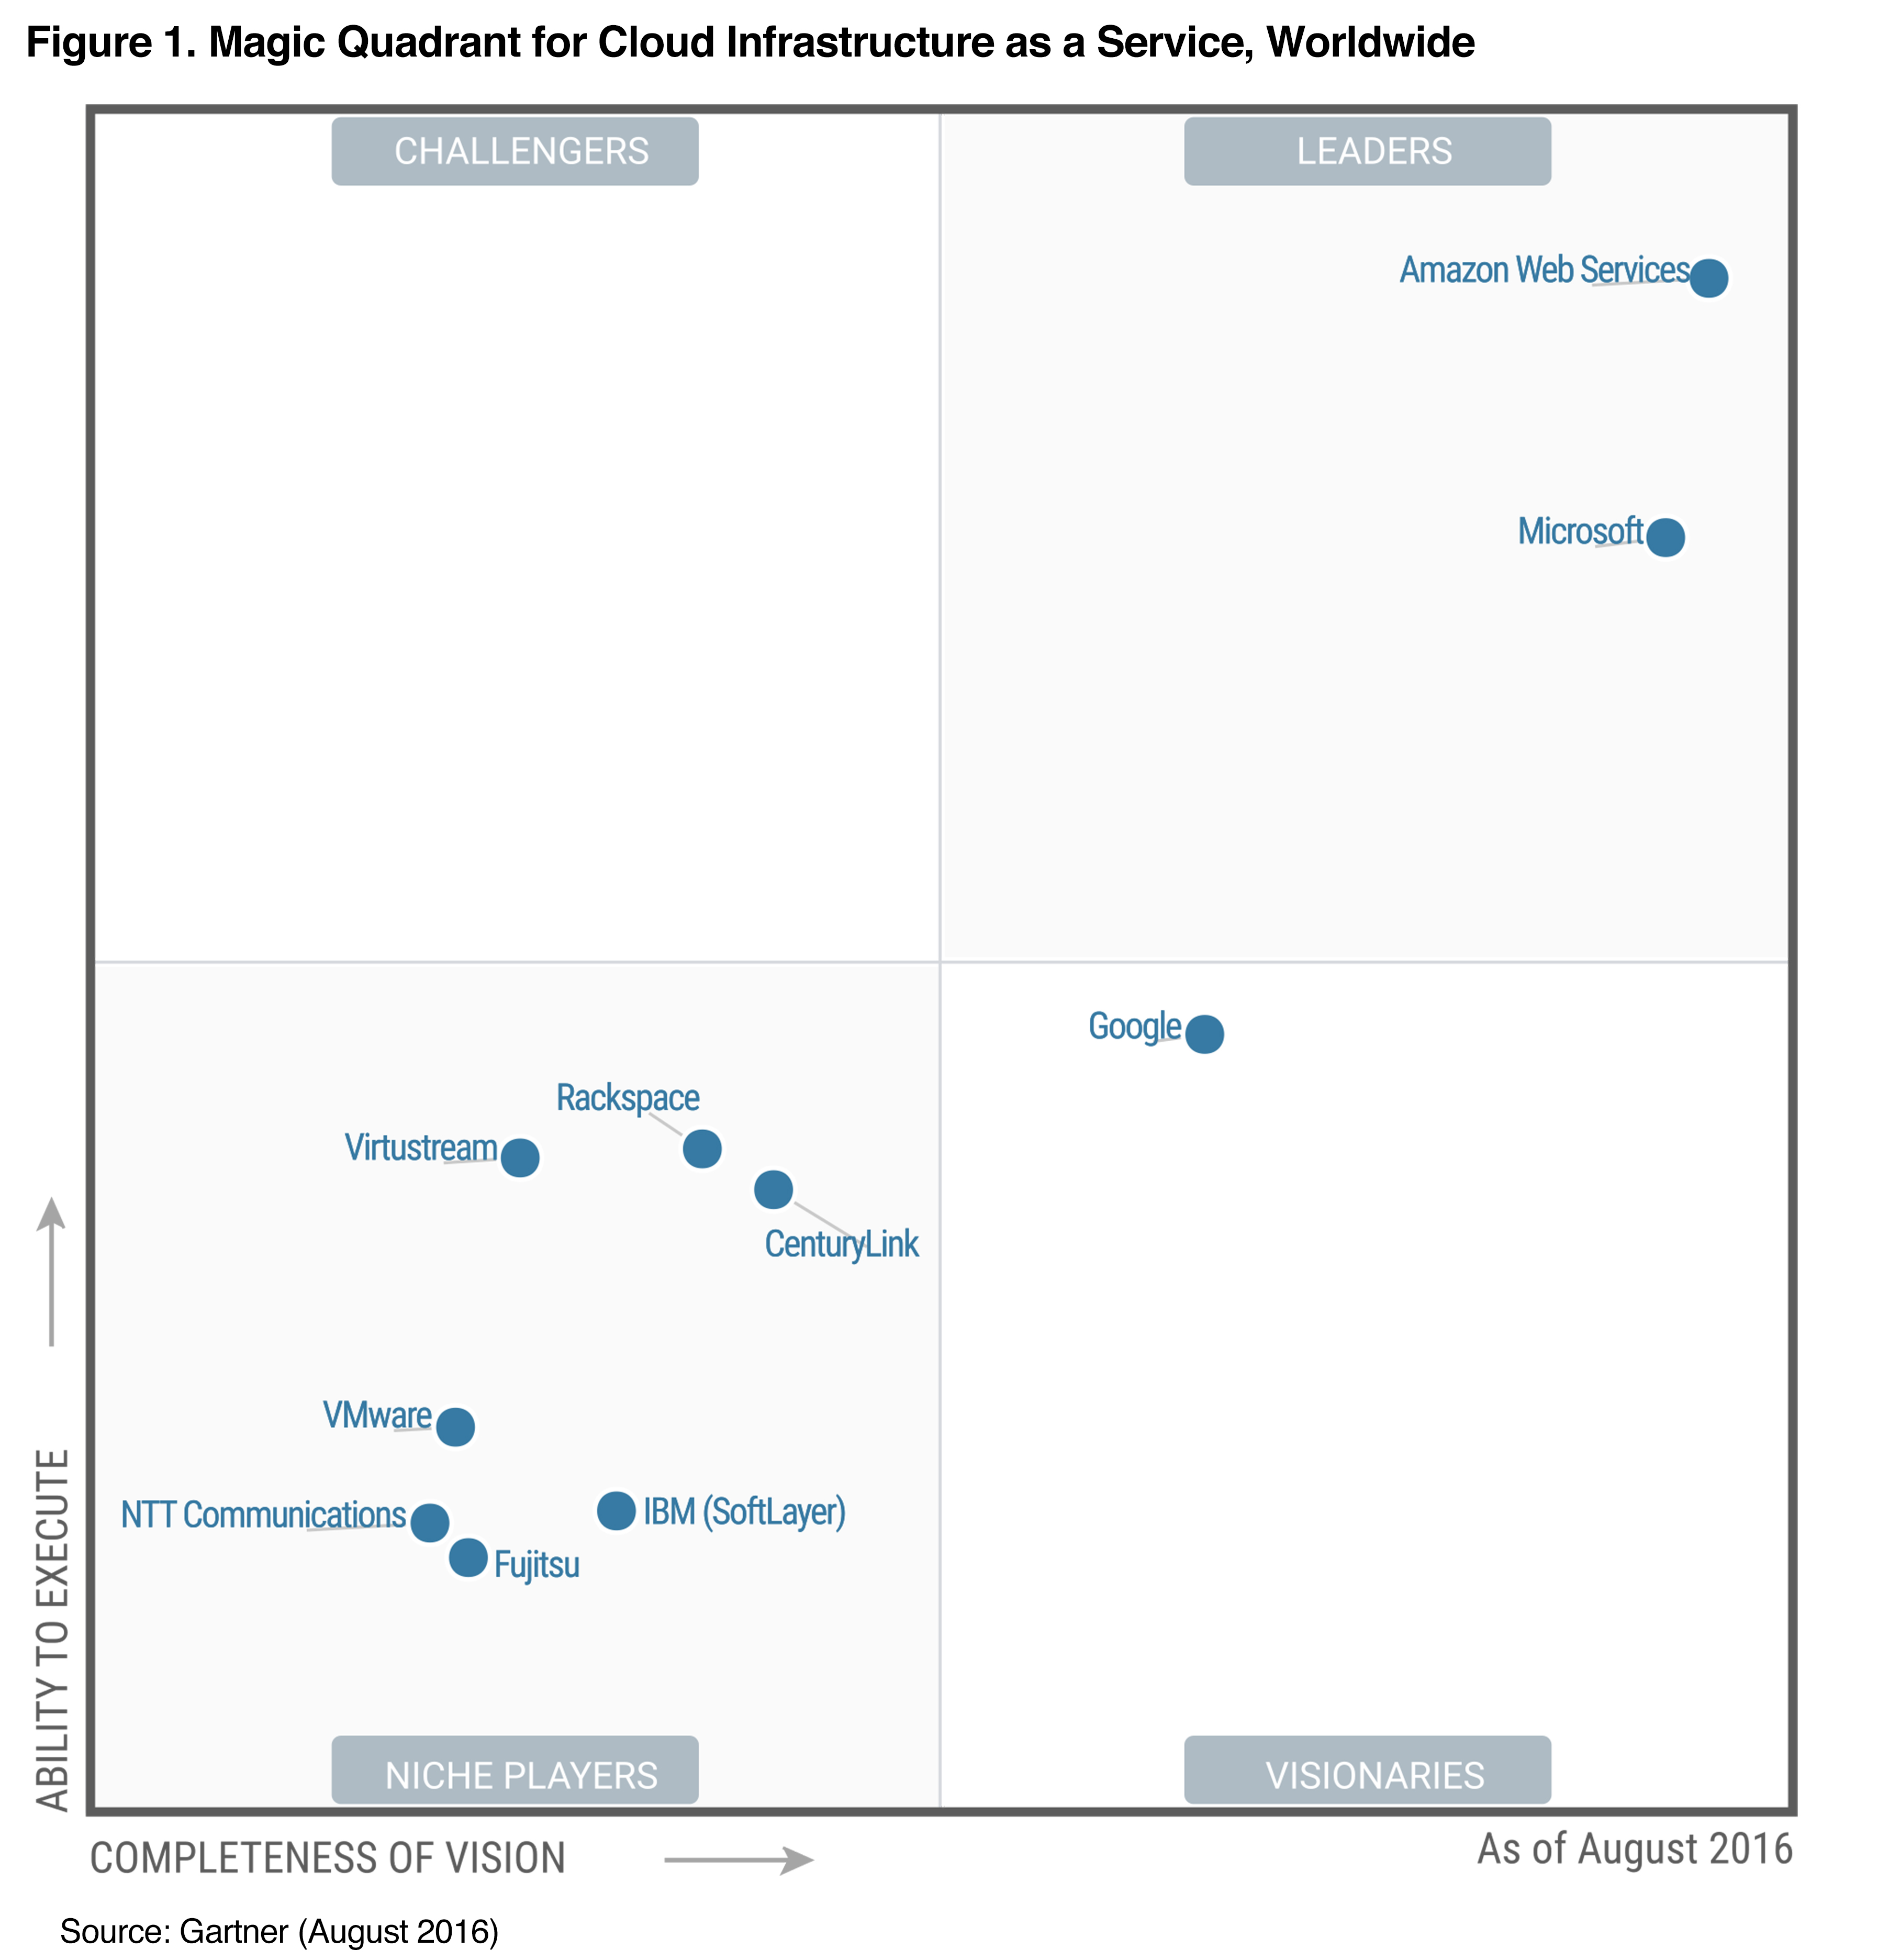 gartner-2016-mq-hi-res-graphic